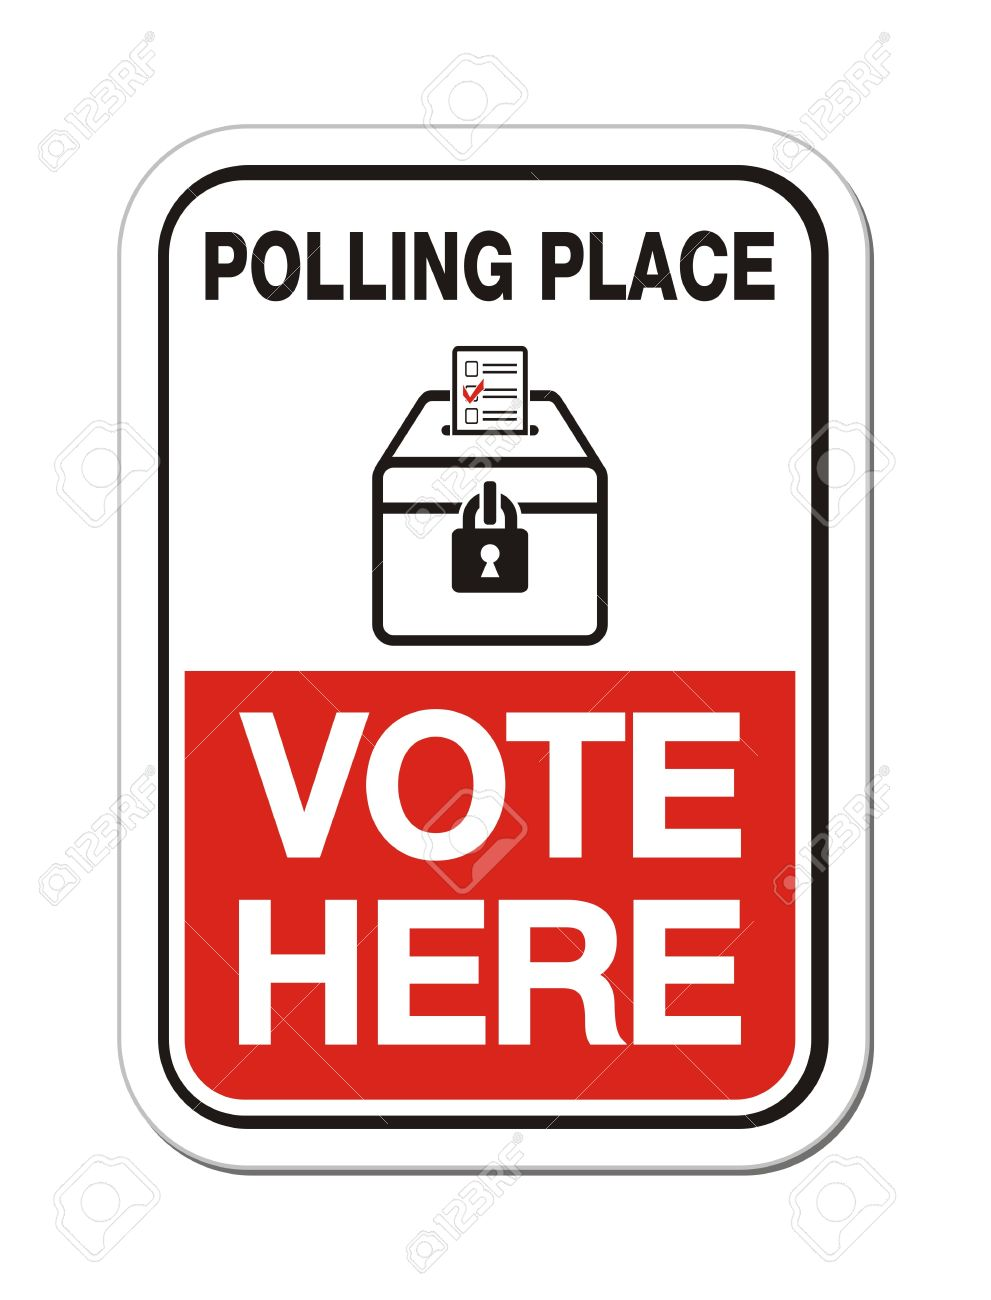 polling place vote here election sign royalty free cliparts